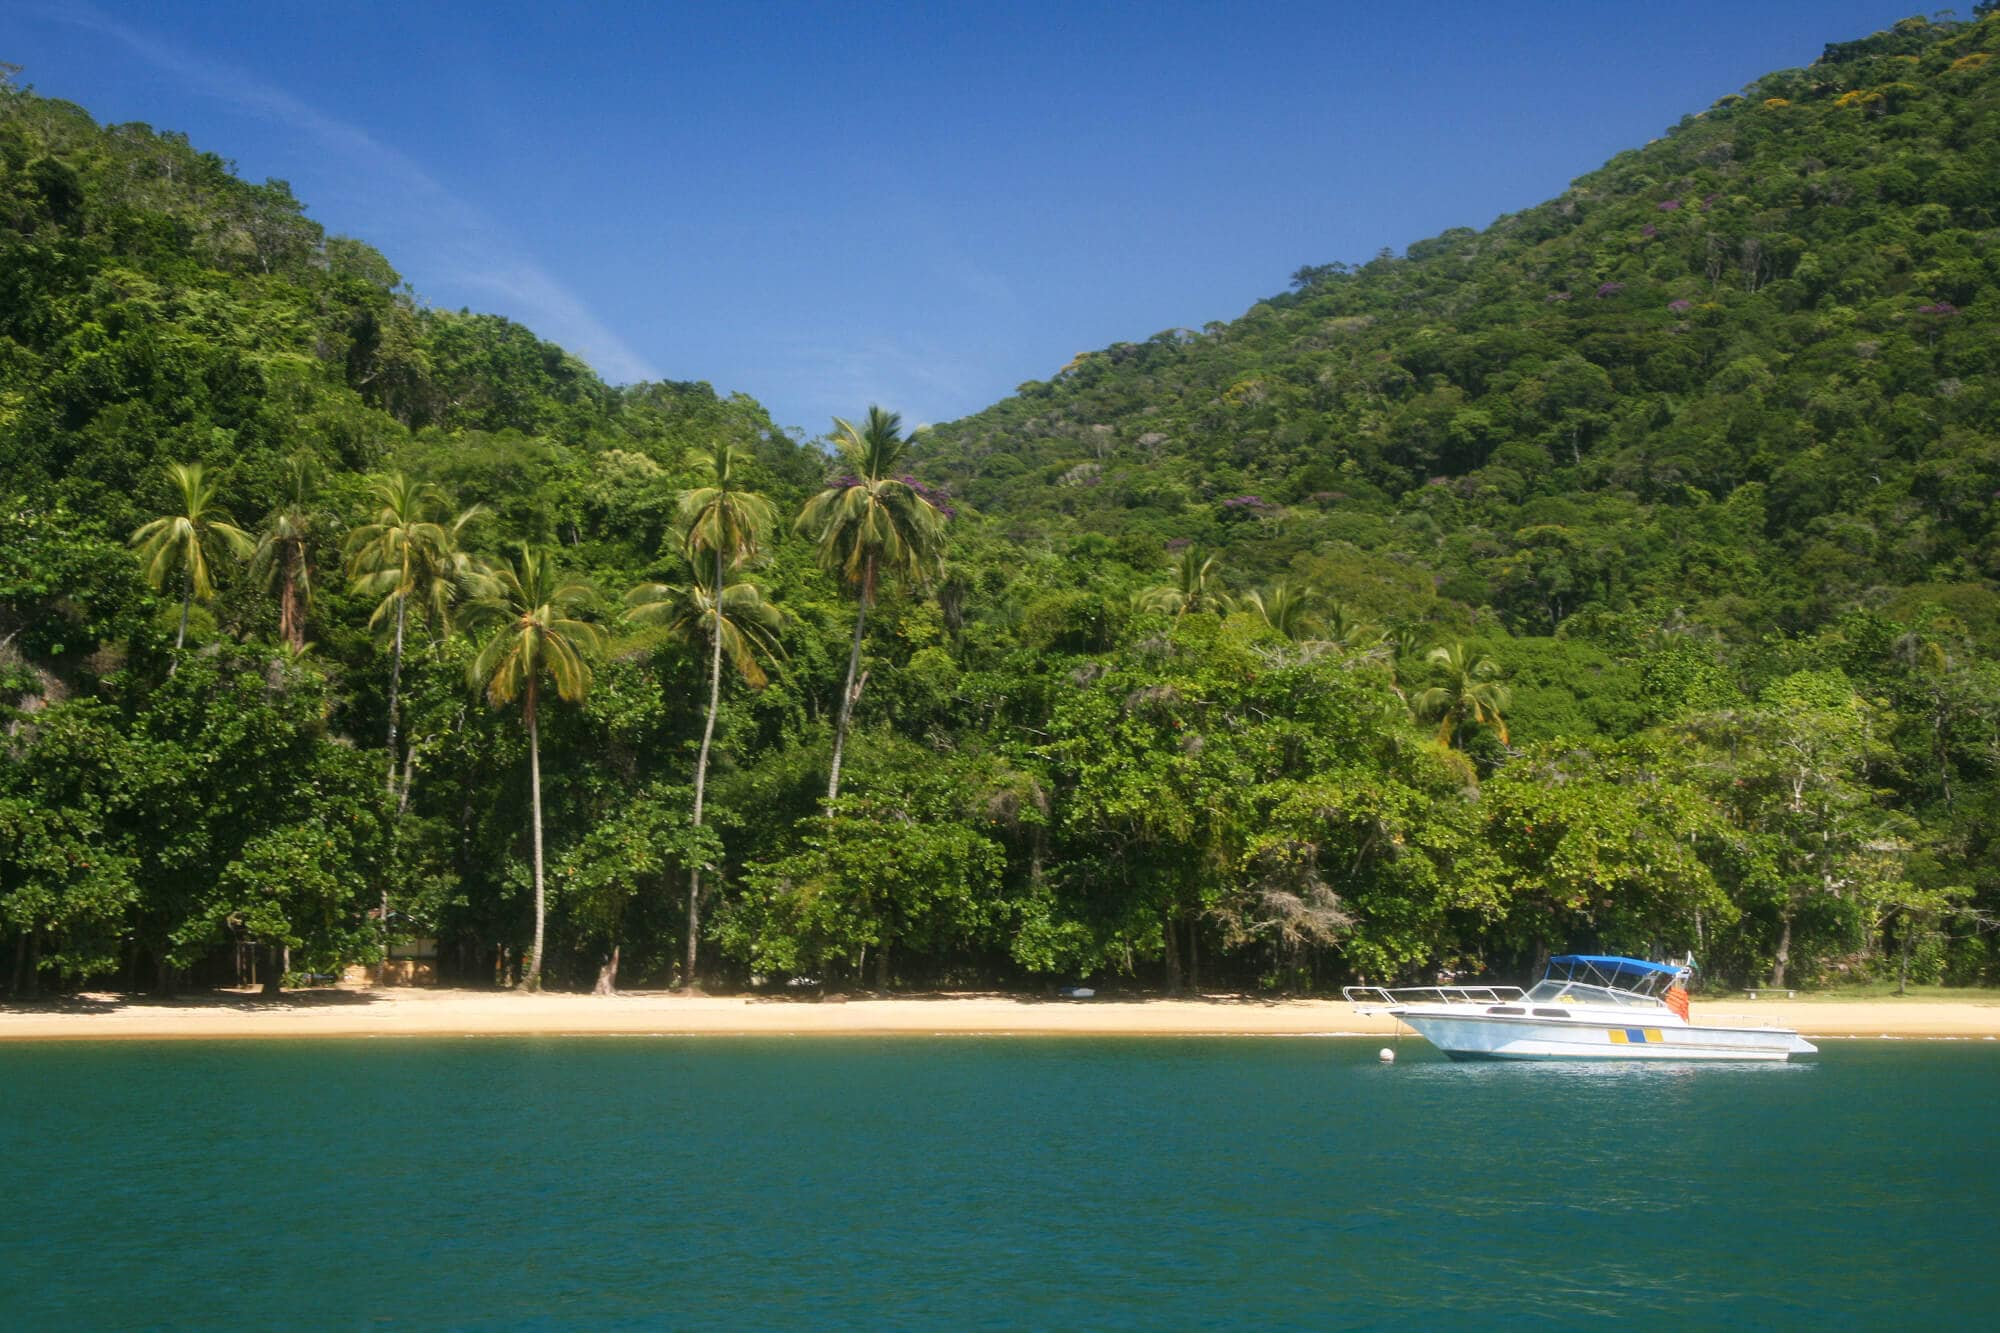 16 female travel bloggers reveal their favorite lesser-known islands - Ilha Grande, Brazil #bucketlist